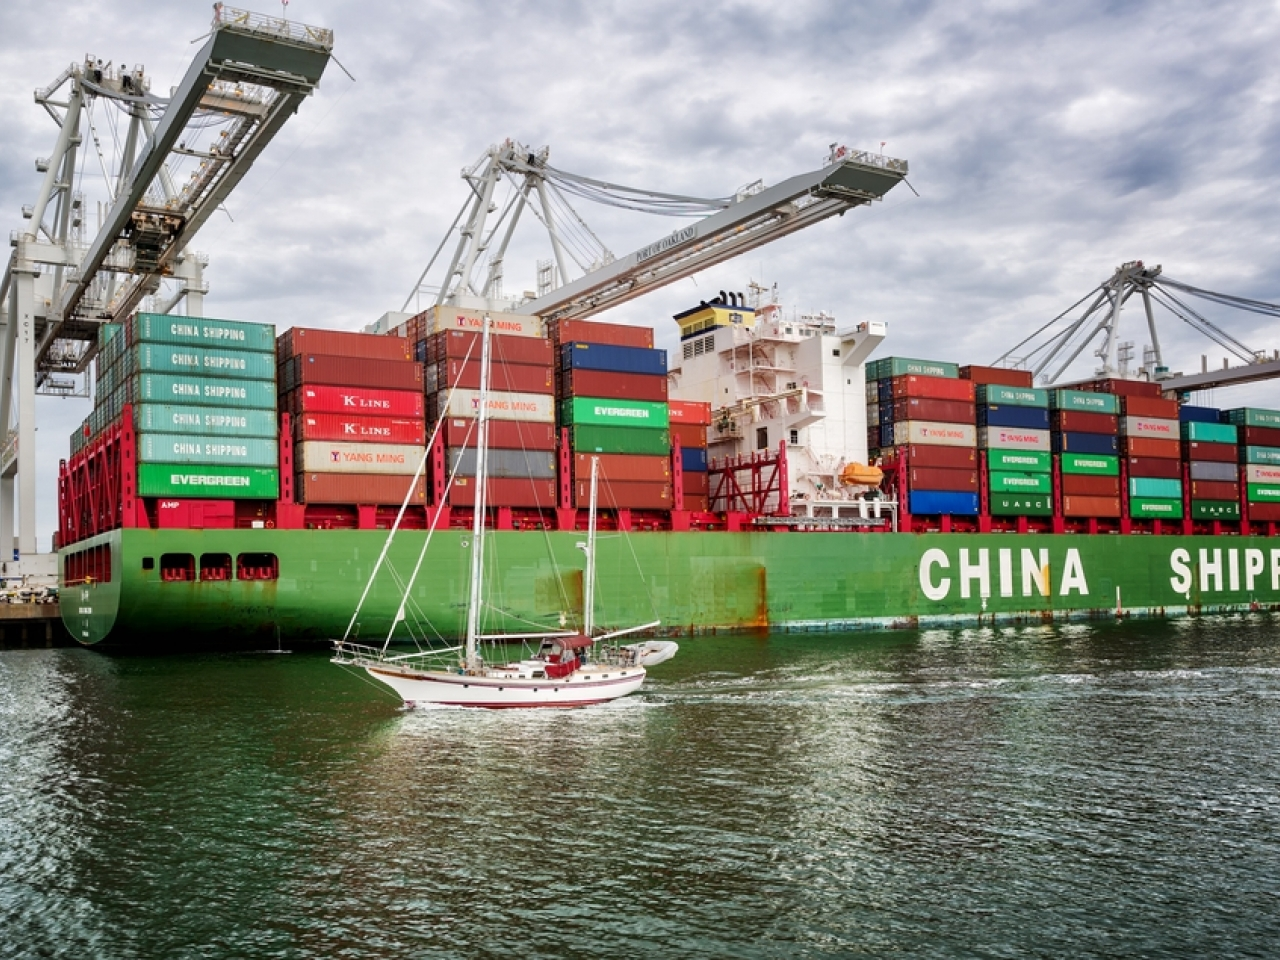 Beijing has been lobbying for its inclusion in the international trade pact. File image: Shutterstock